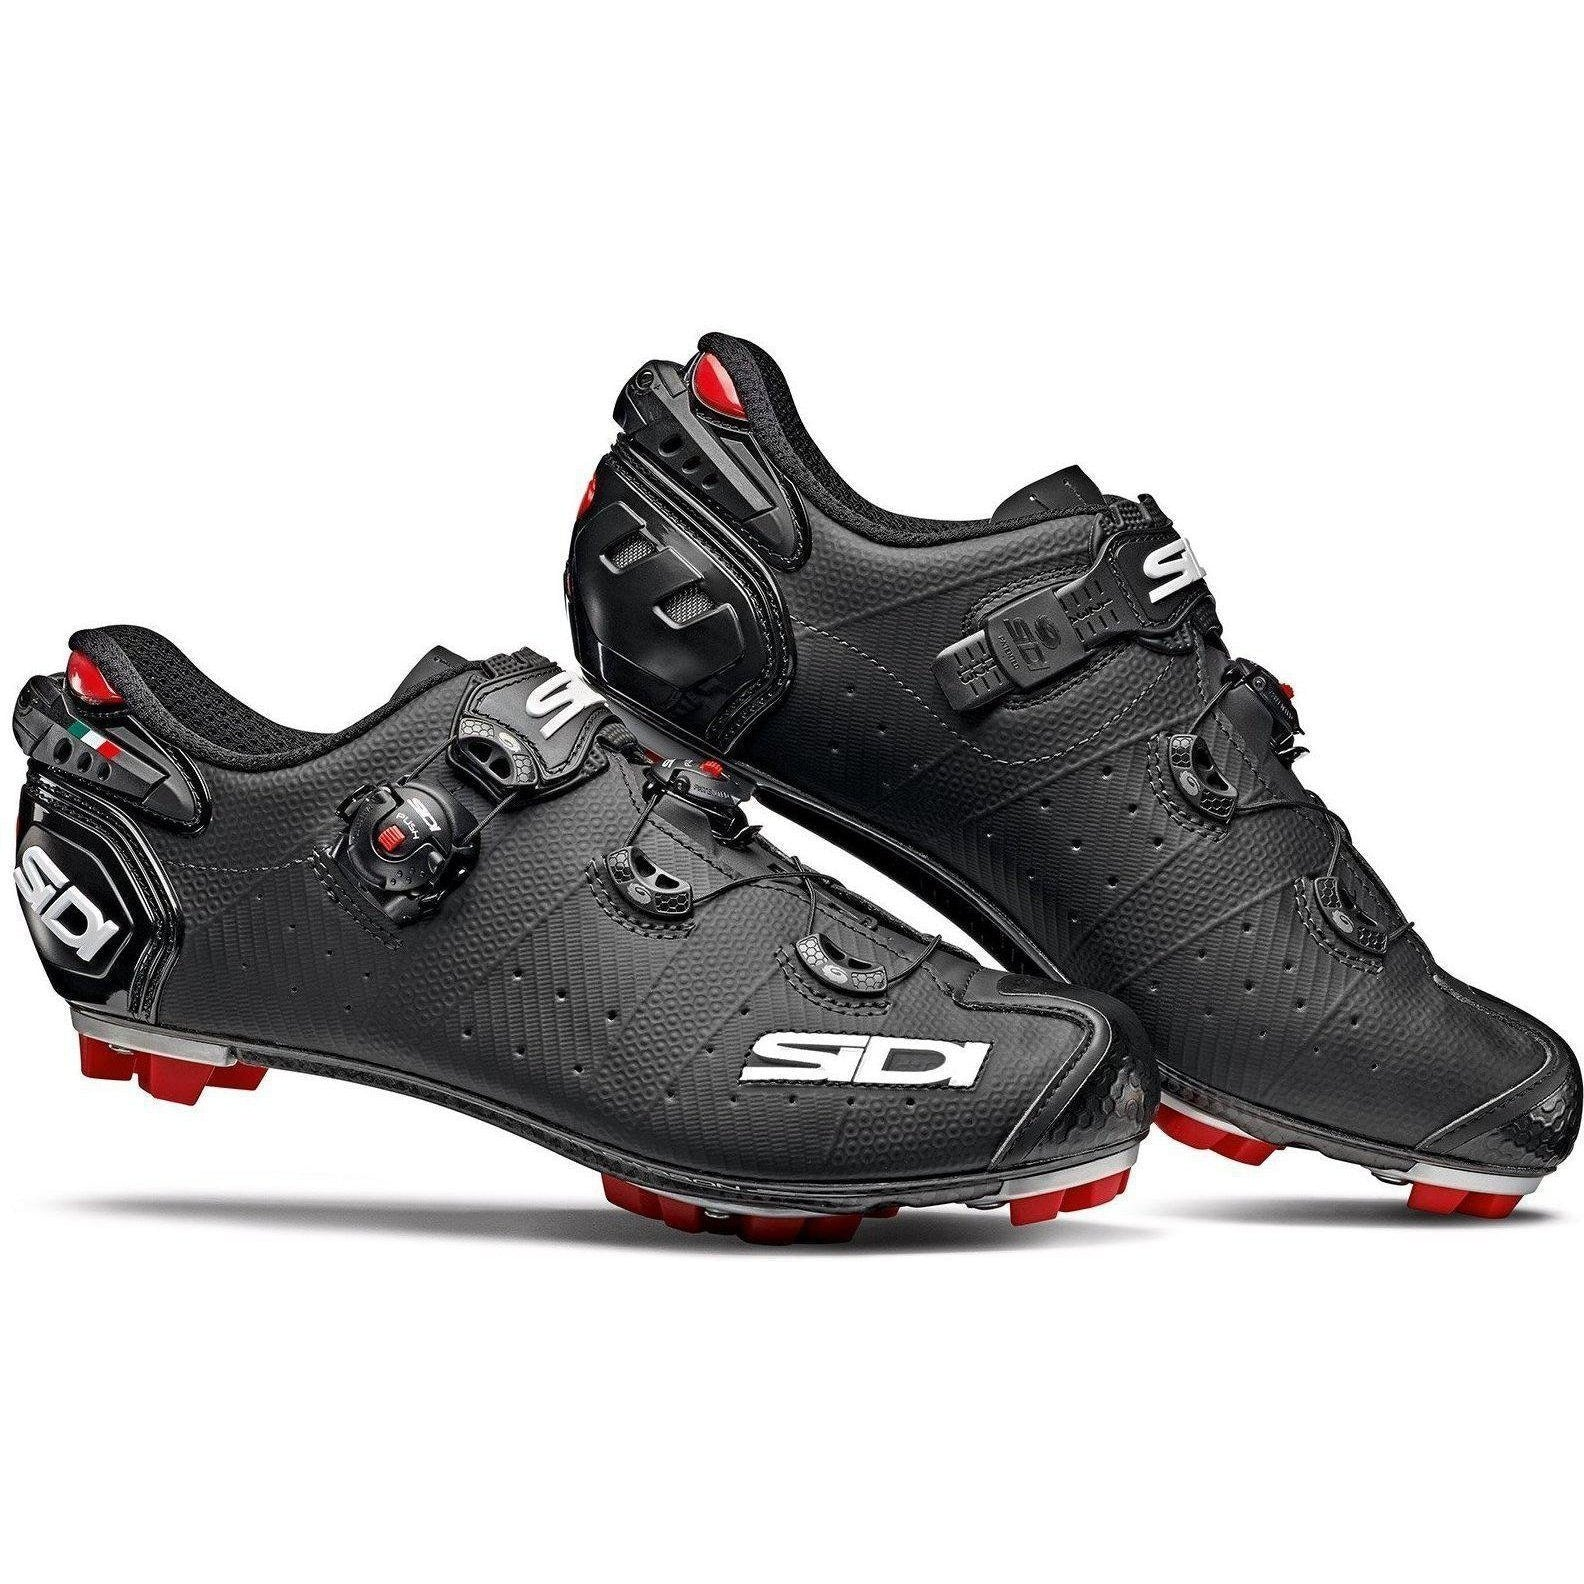 Sidi-Sidi Drako 2 SRS MTB Shoes - Matt-Matt Black-38-SIDRAKO2MATNEOP38-saddleback-elite-performance-cycling